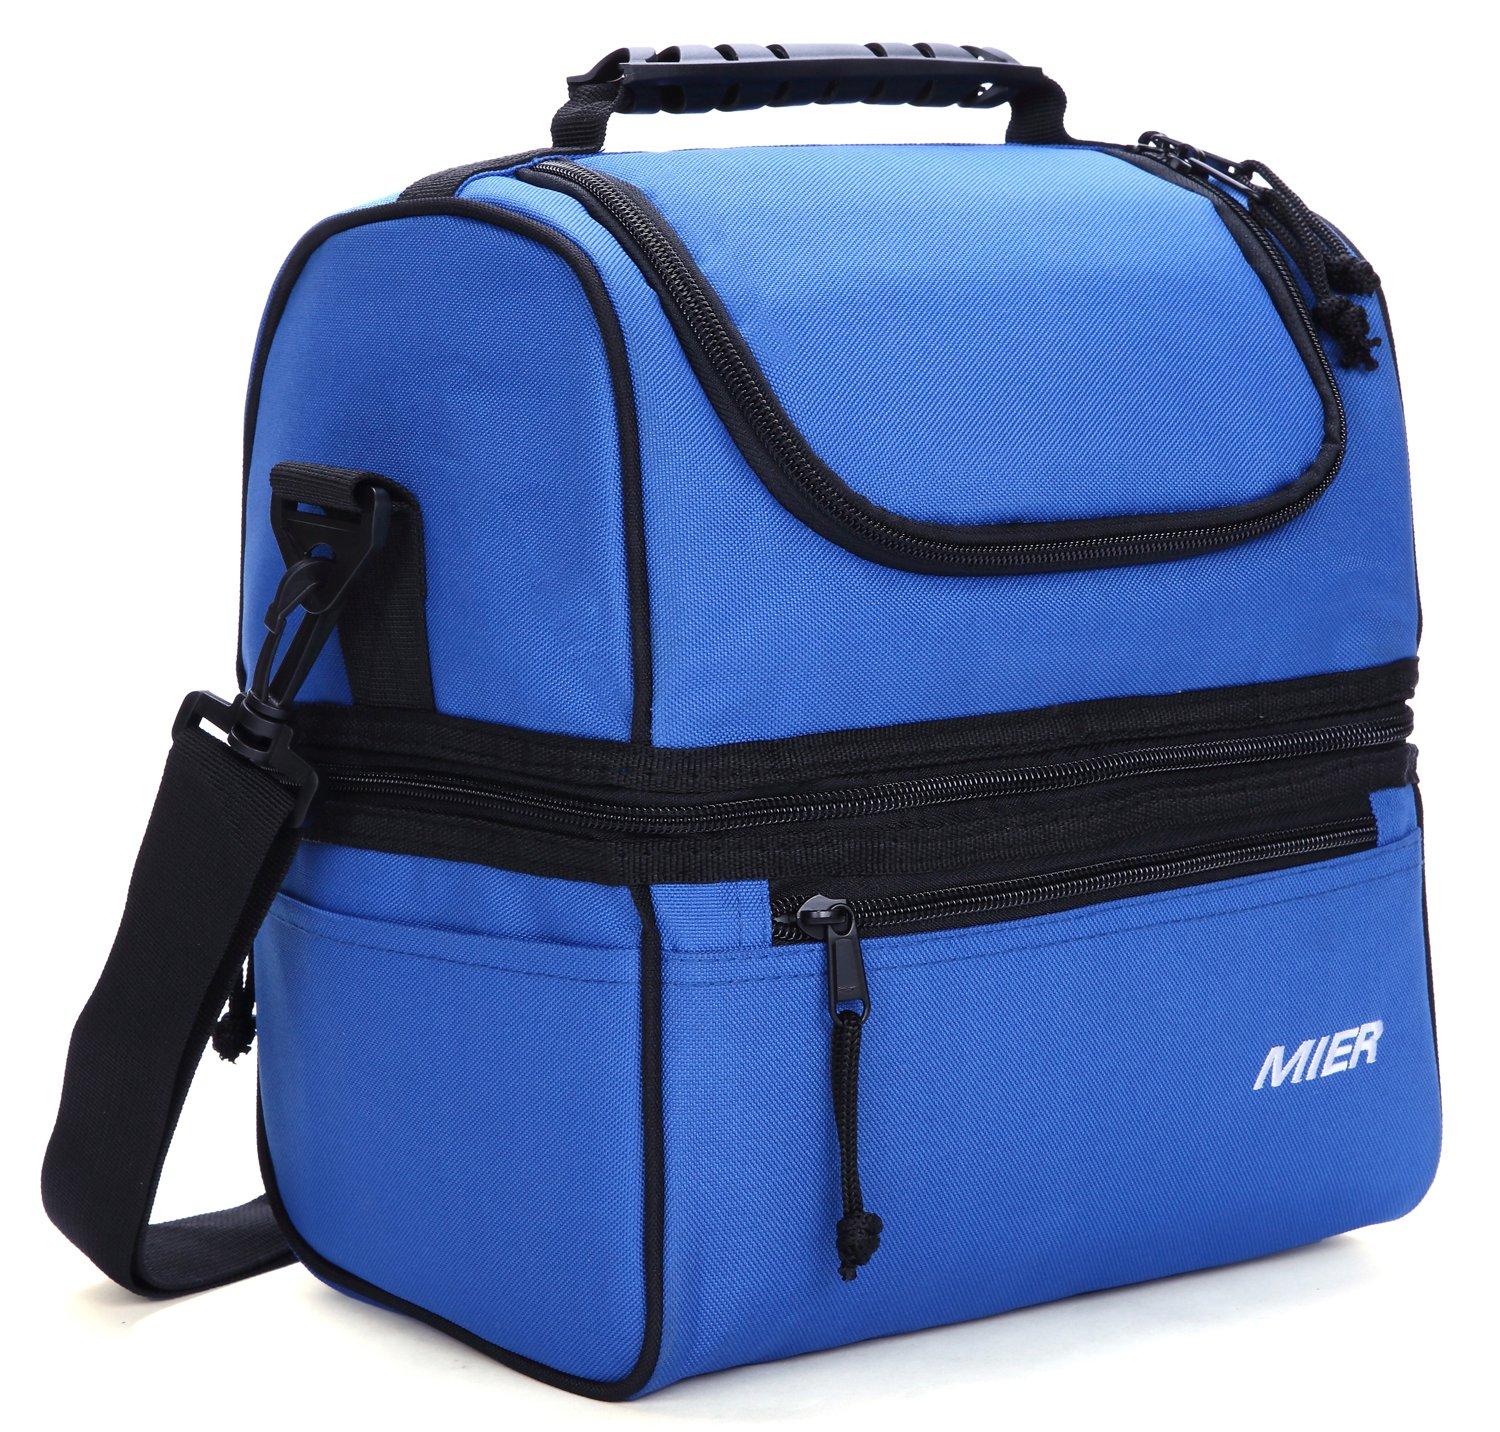 Top 10 Best Tote Cooler Bags For Summer 2018 2019 On